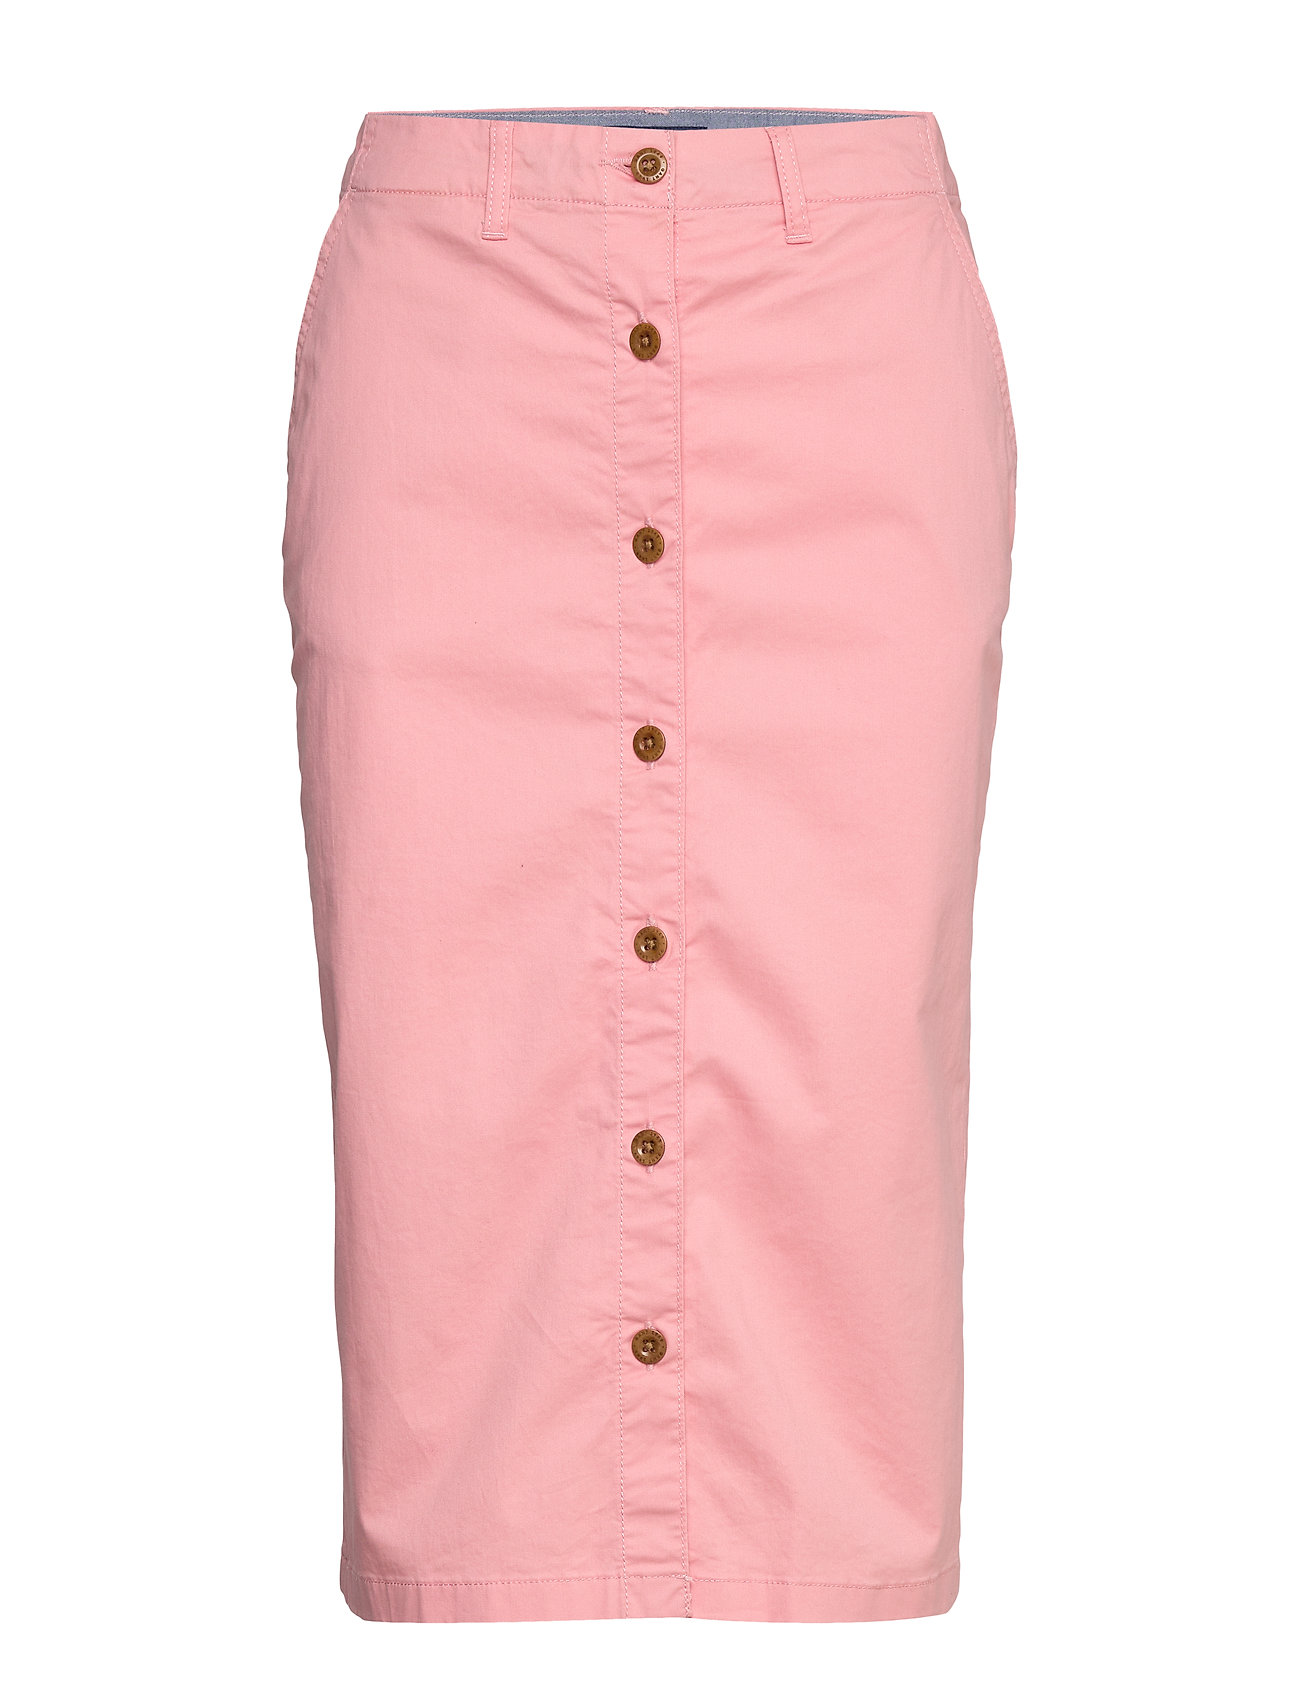 Gant D1. HW CHINO SKIRT - SUMMER ROSE